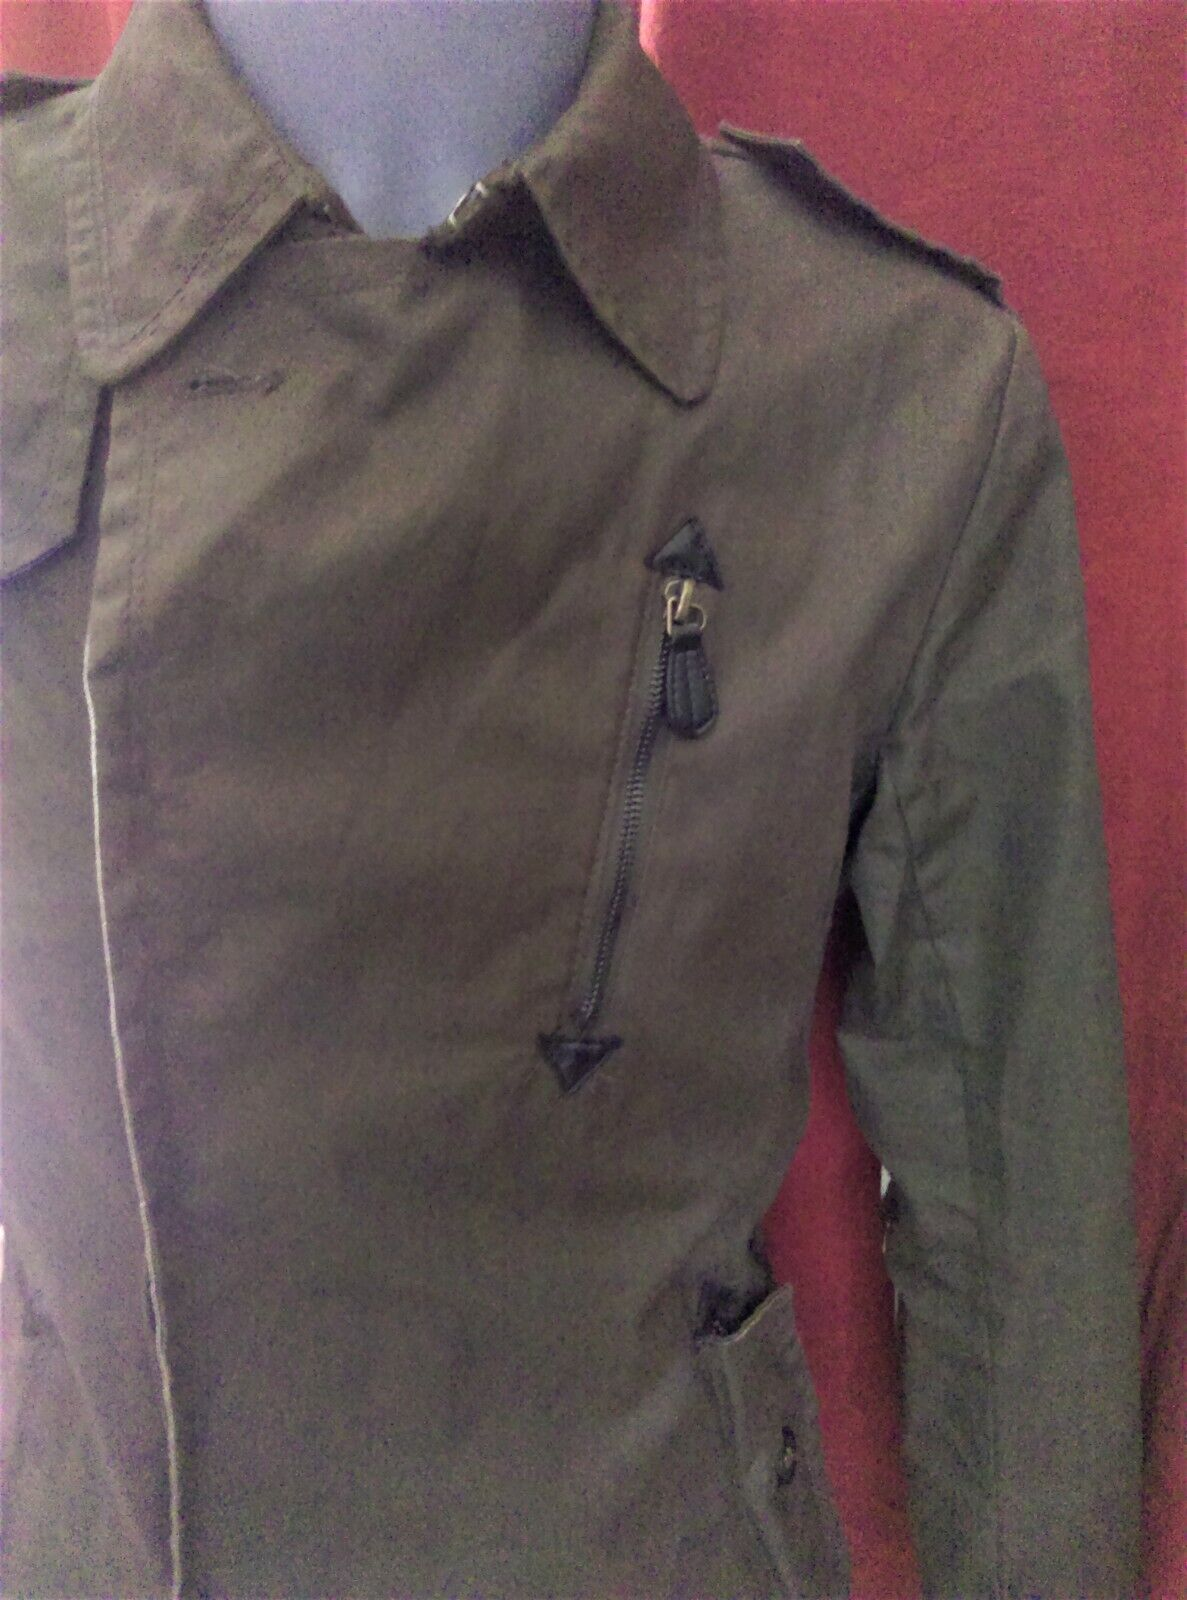 Zara youth - veste/trench  homme marron - taille m